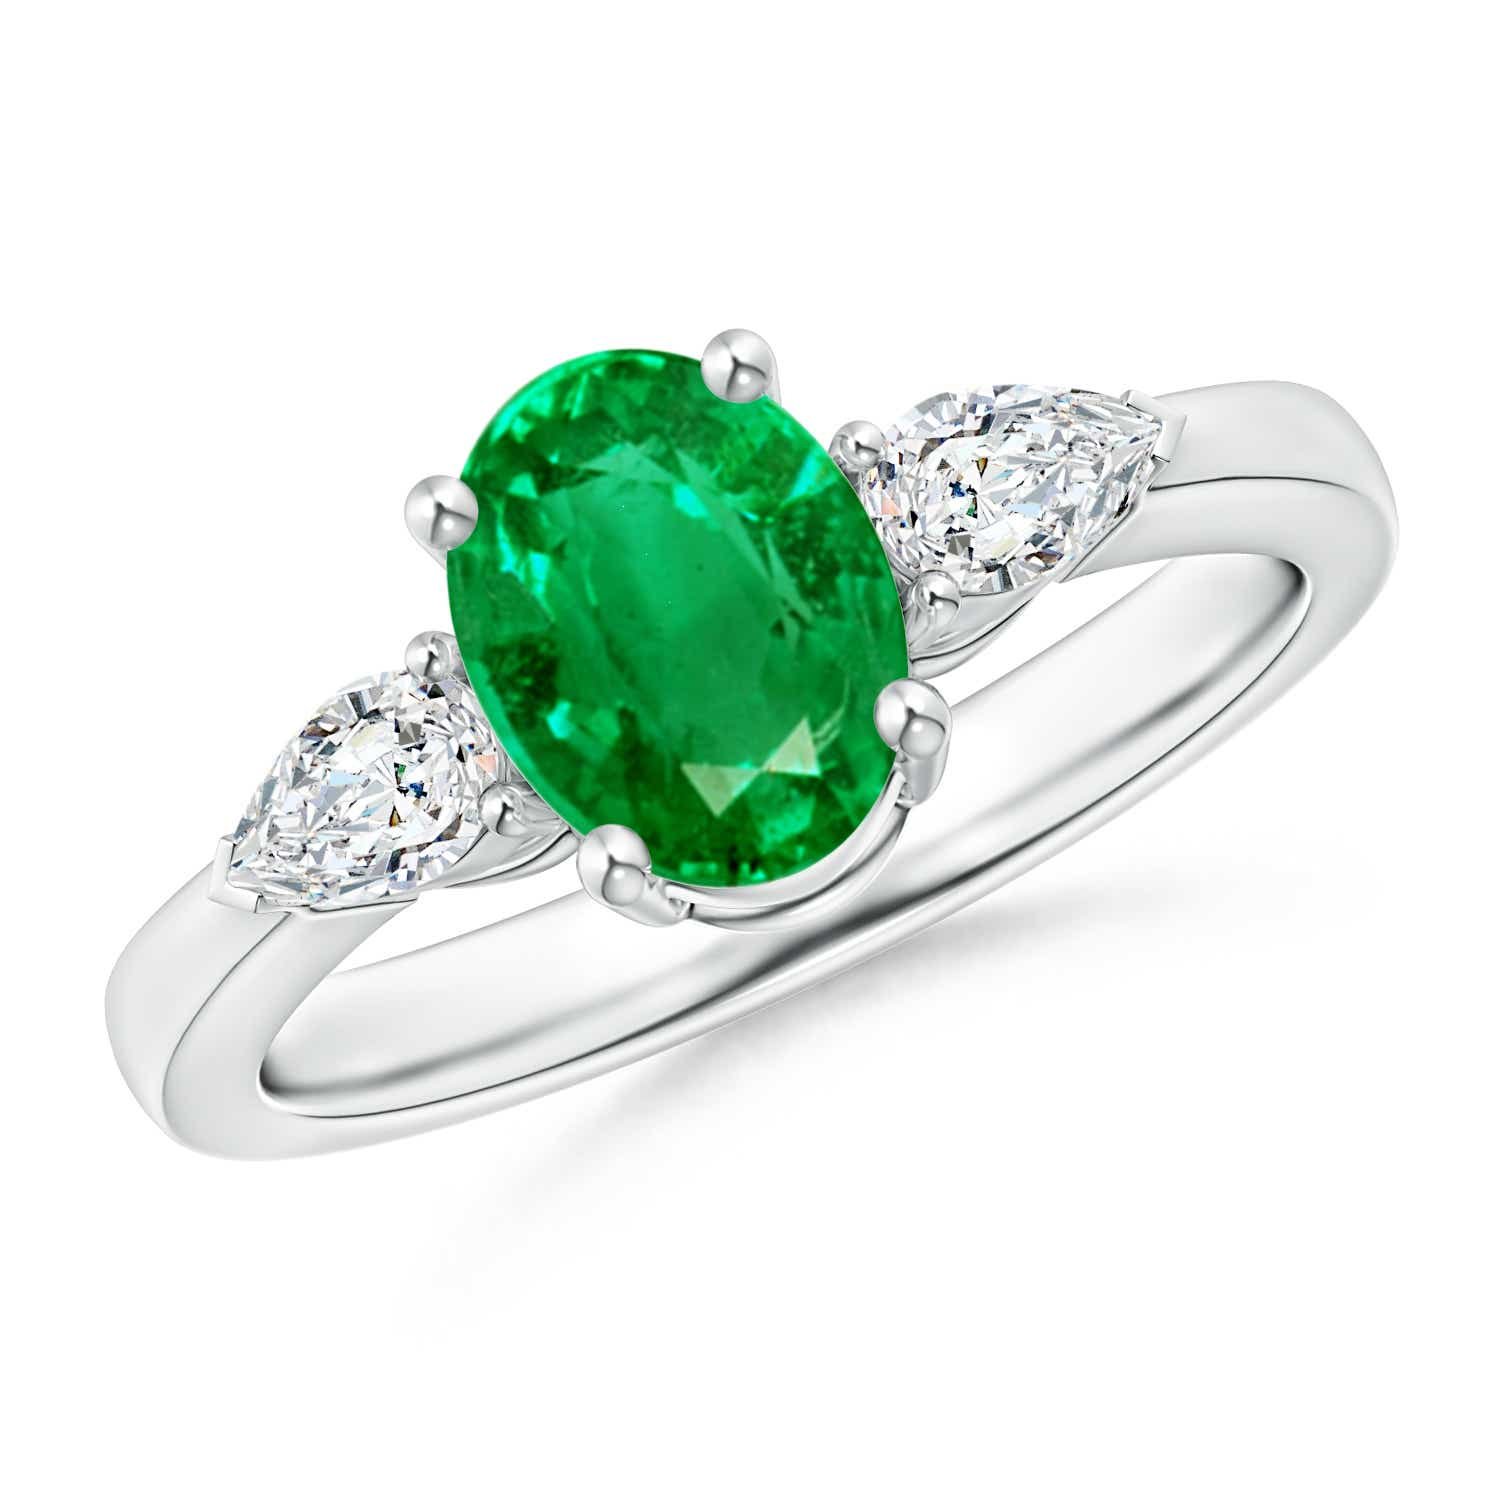 Angara Solitaire Pear Natural Emerald Bypass Ring 7qhSvePN